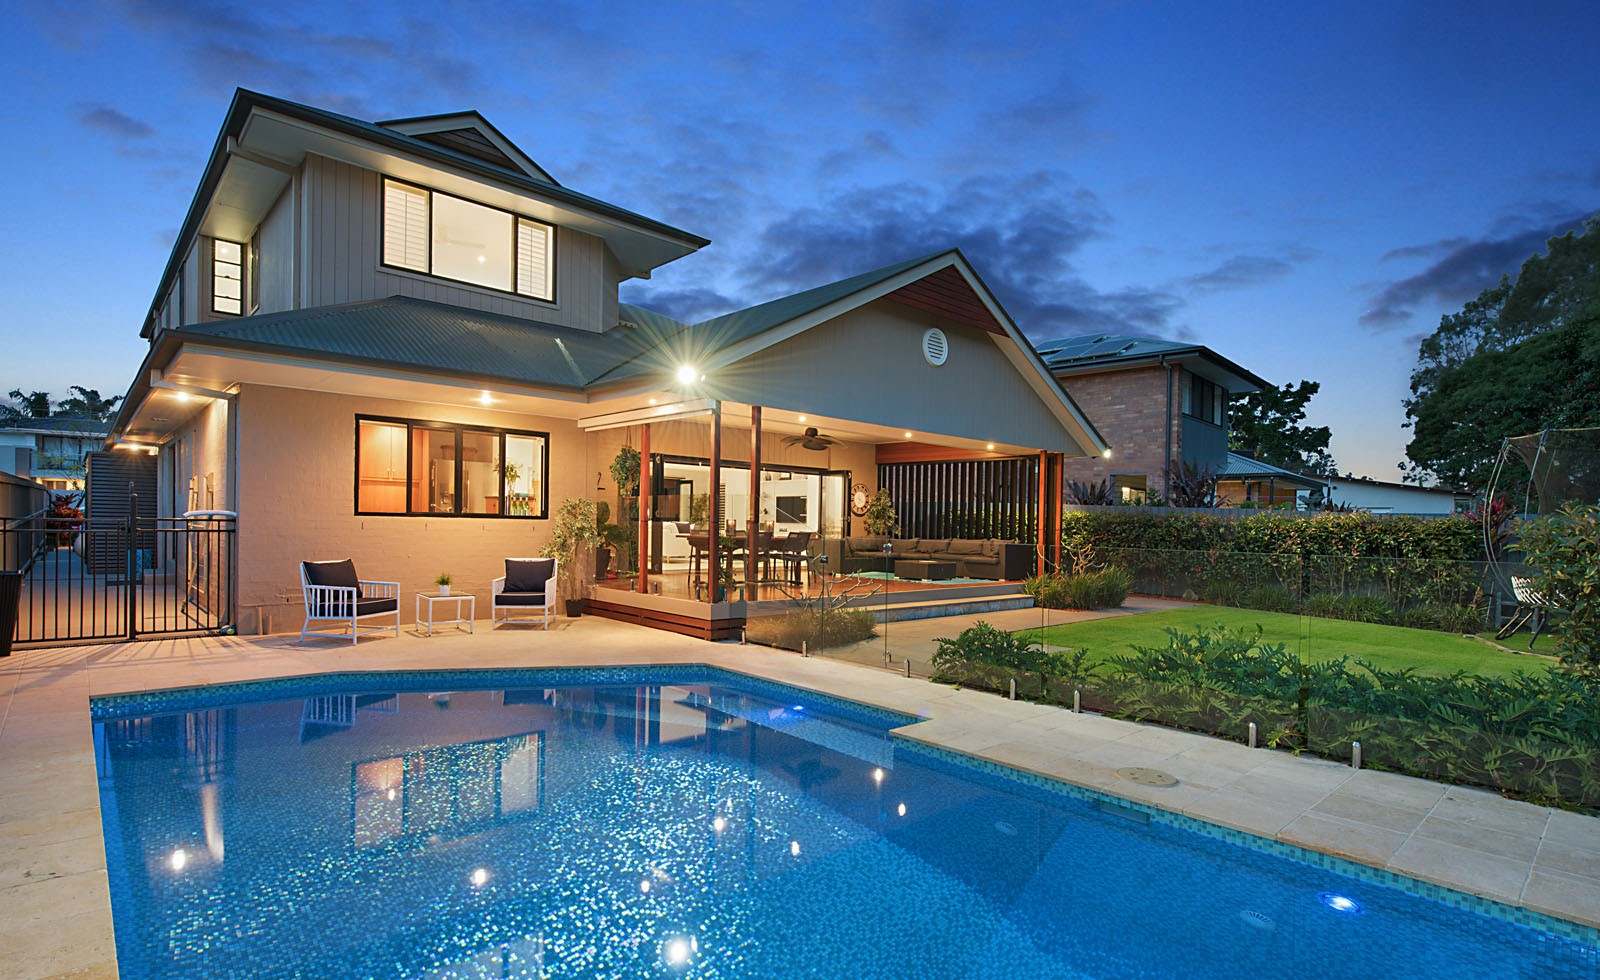 Moving up!- Is now the time to upsize homes?